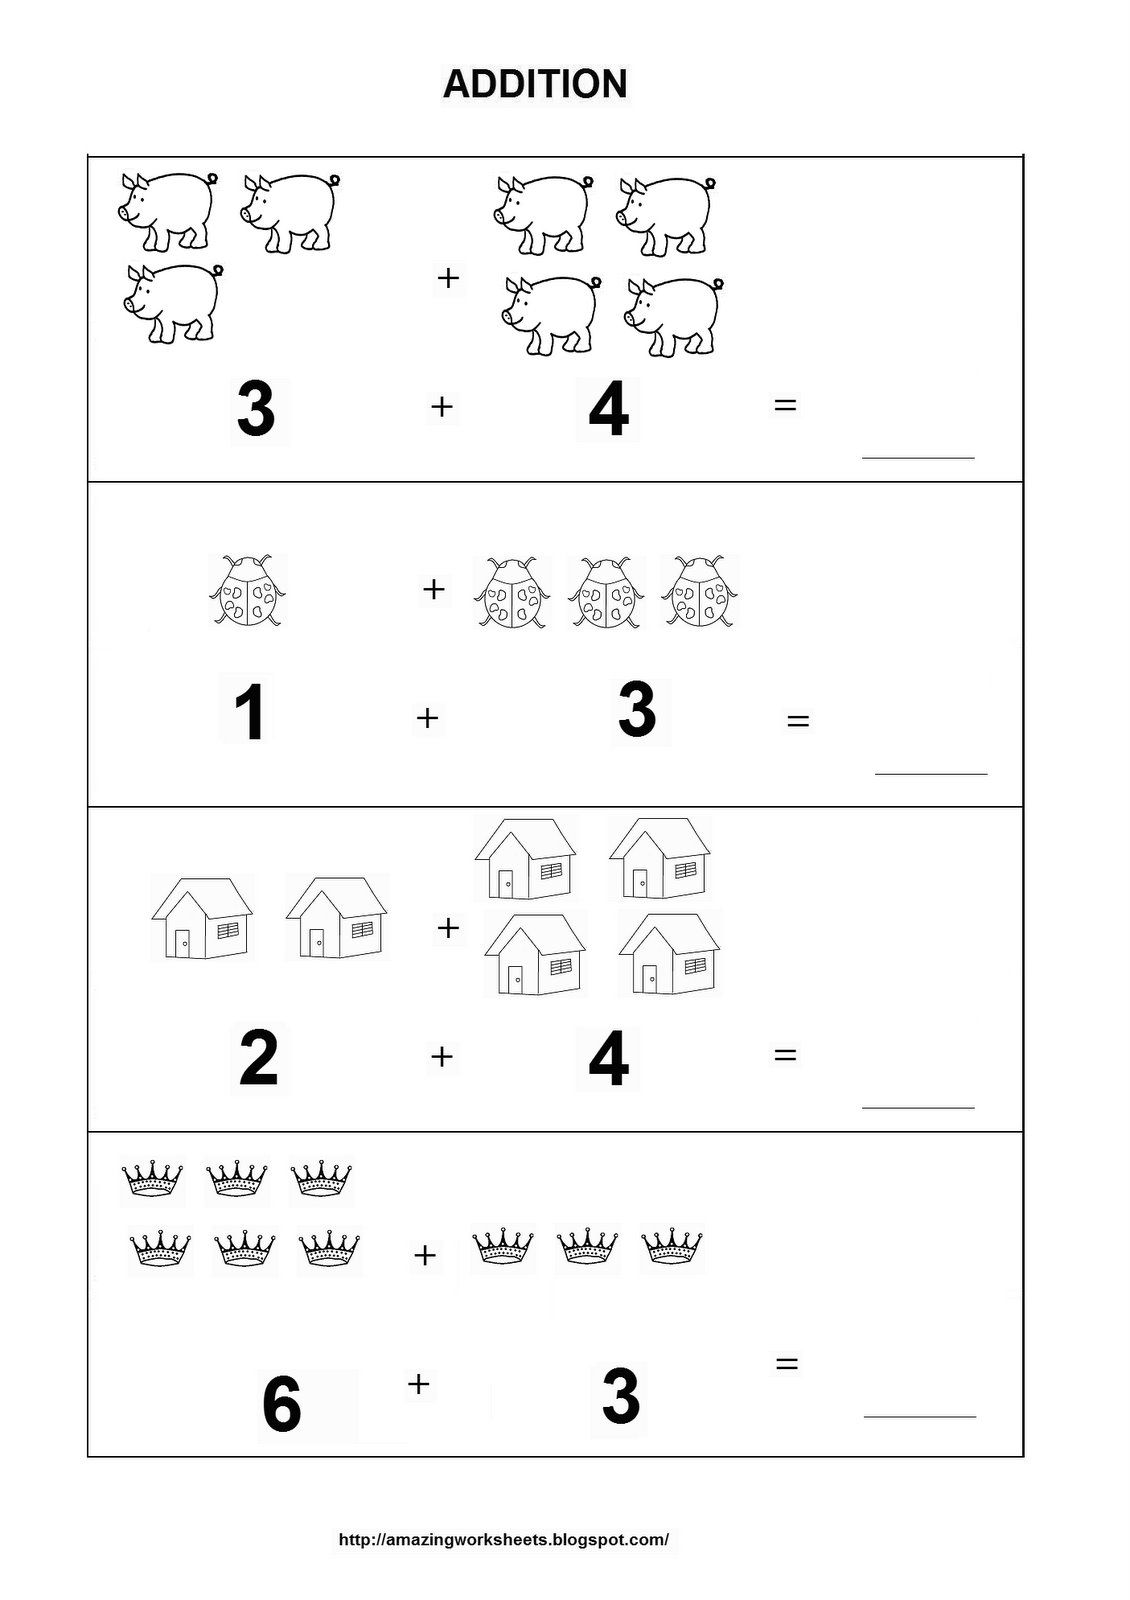 Worksheet 612792 Additions Worksheets Addition Worksheets 60 – Worksheet for Addition